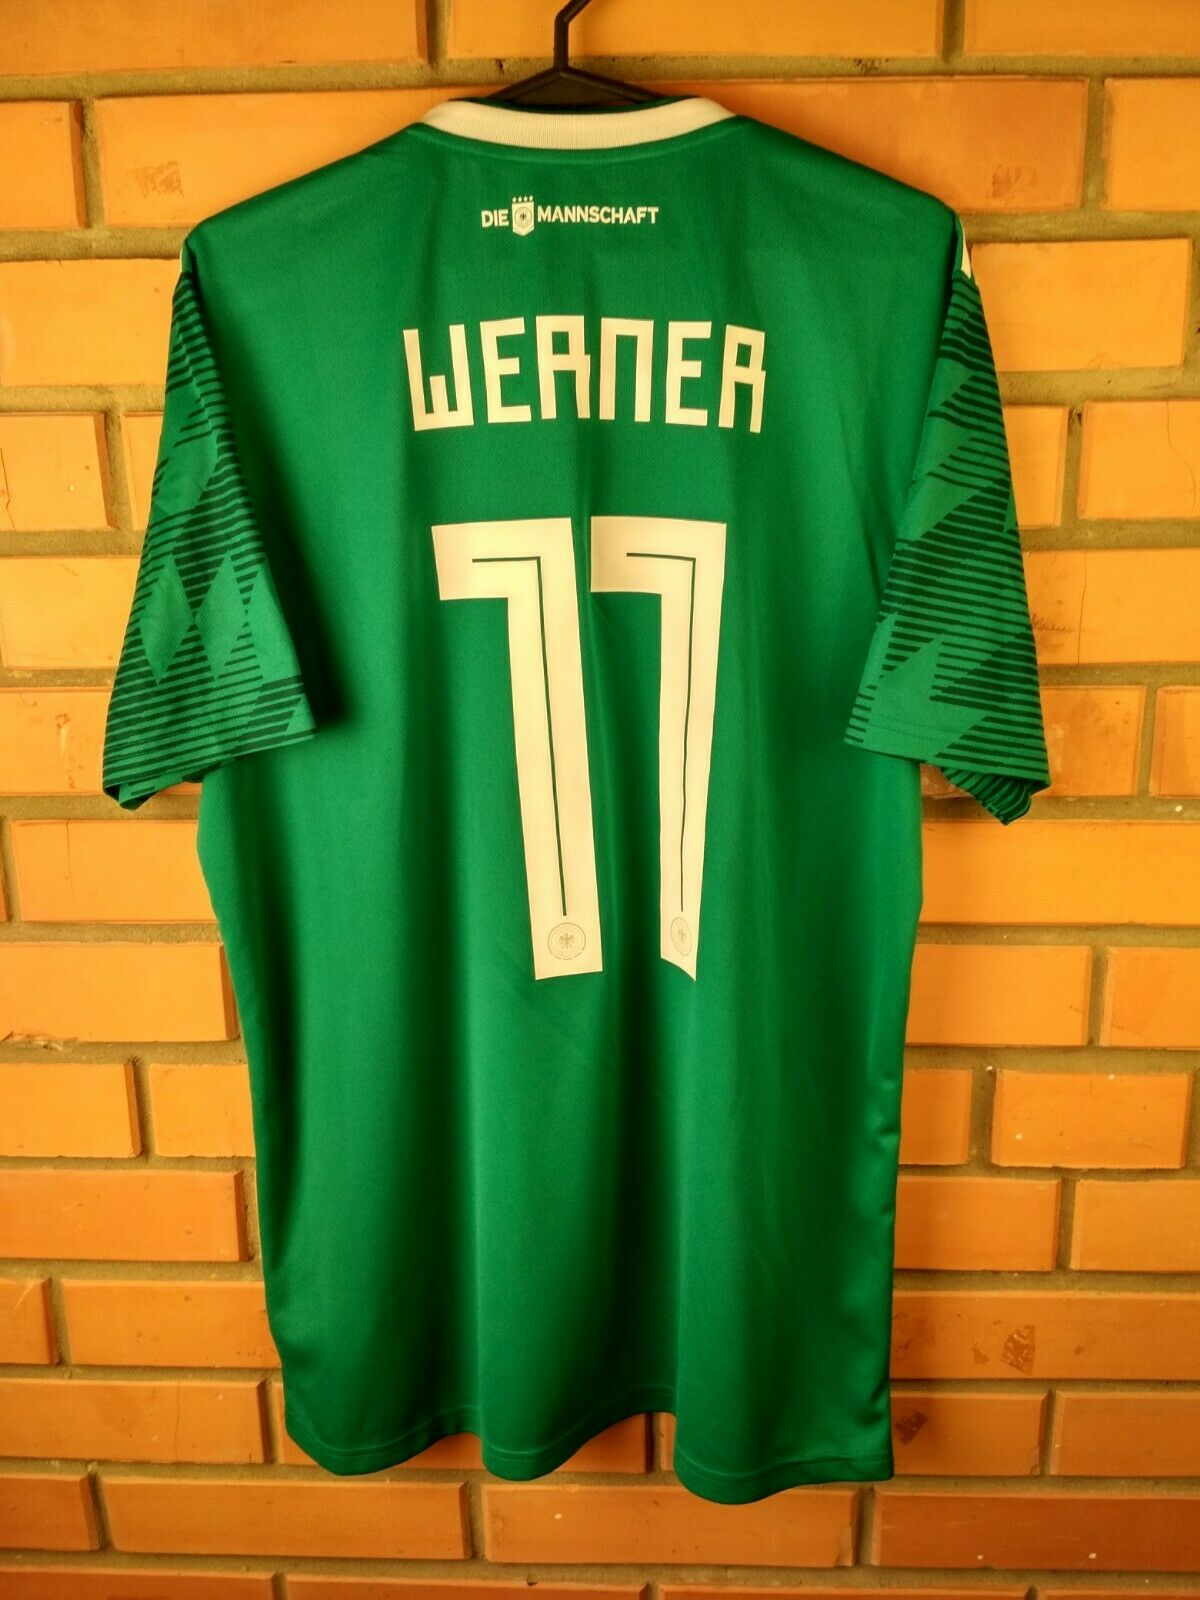 5871e347891 Werner Germany soccer jersey large 2018 away shirt BR3144 football Adidas